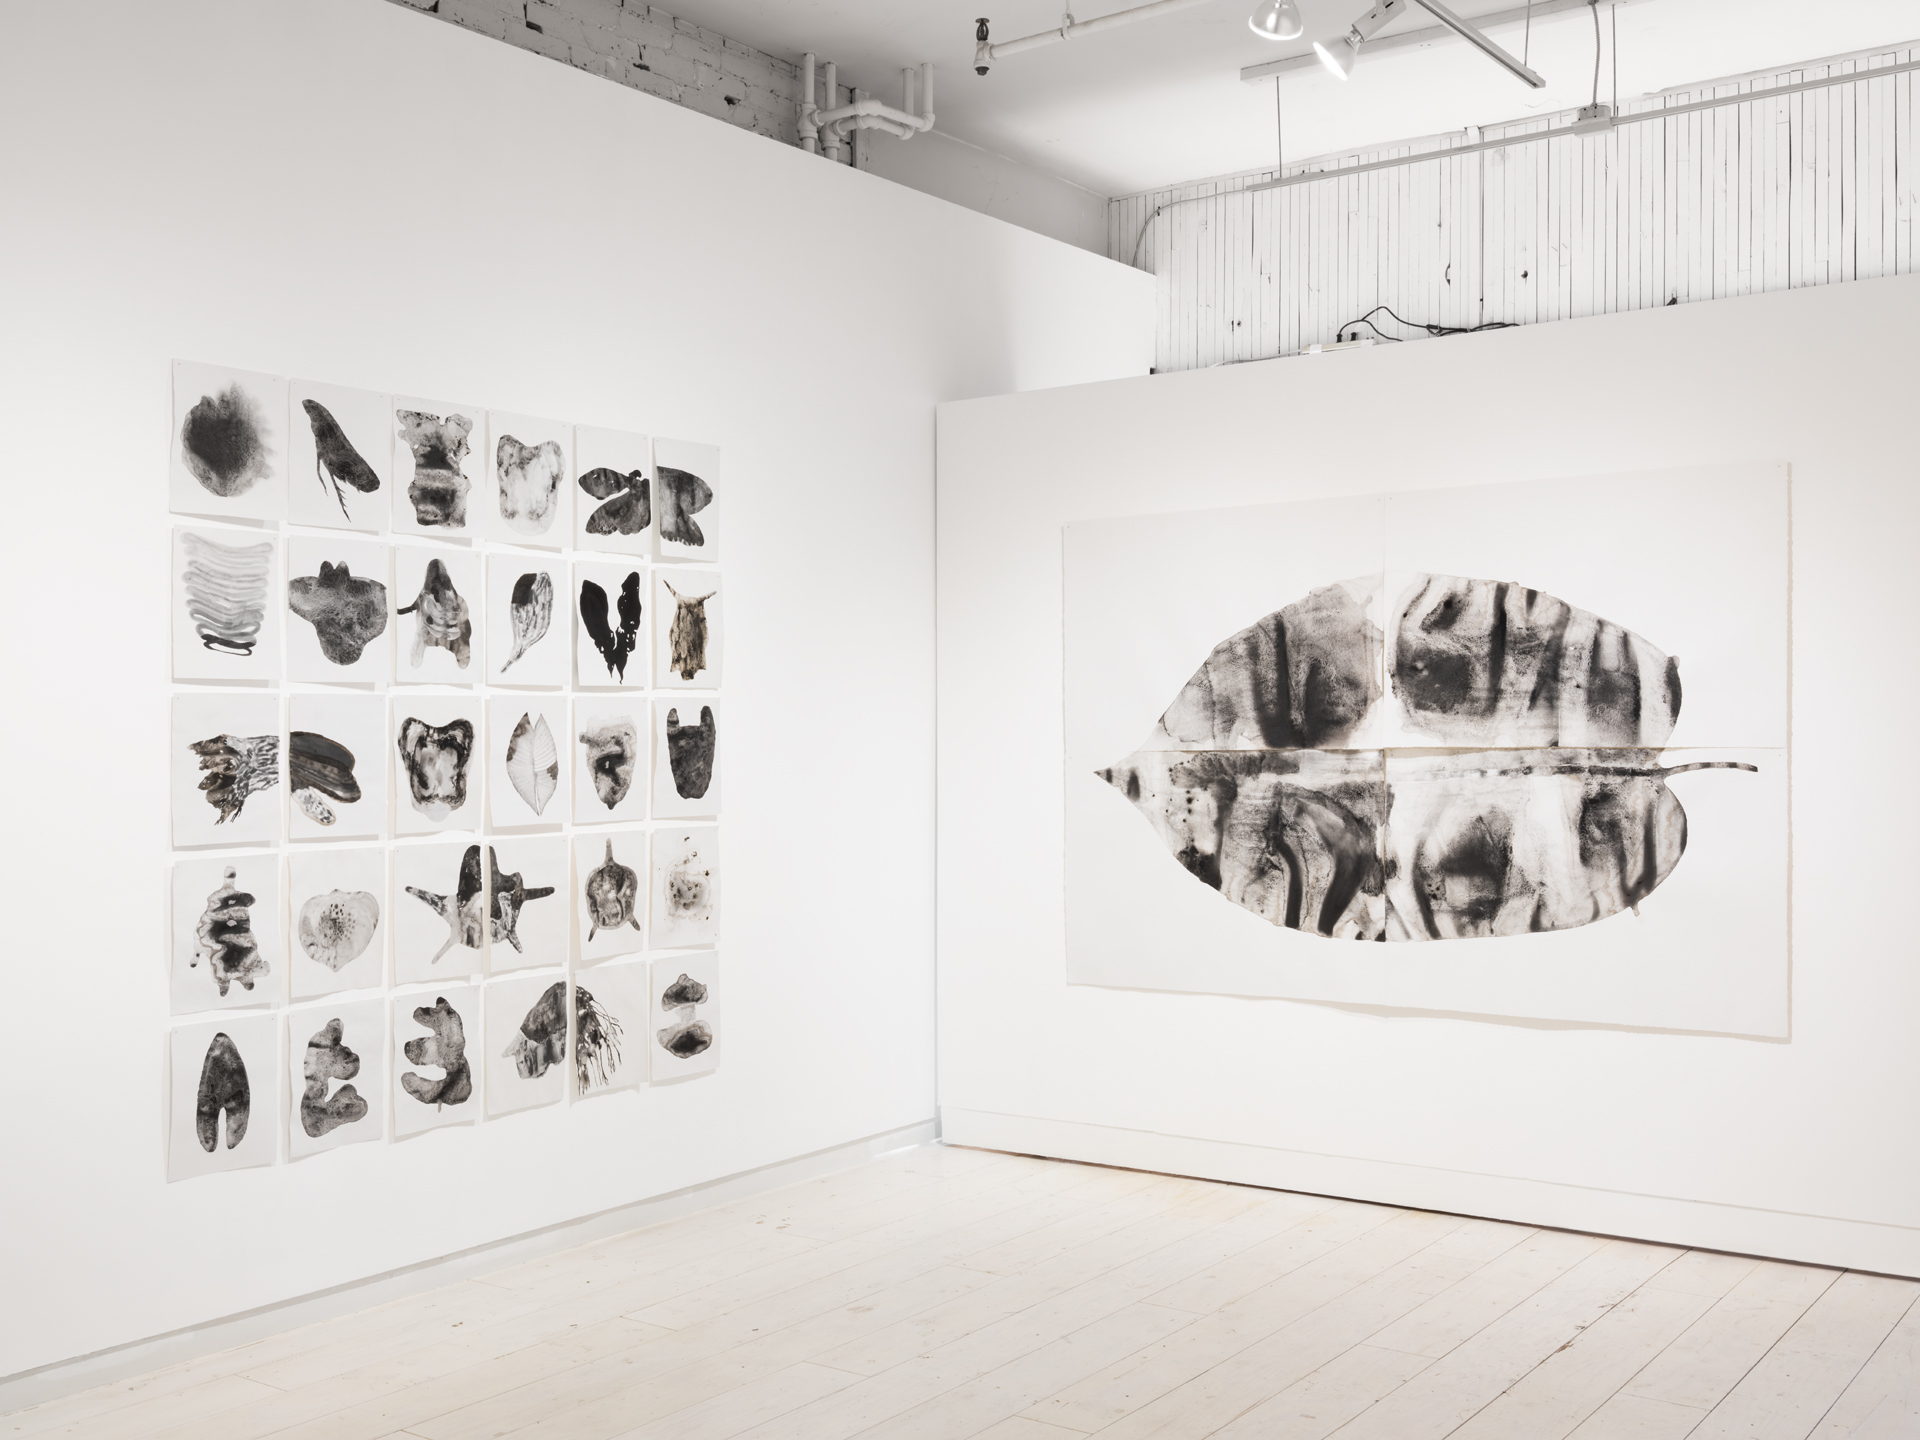 Installation view,  carbon study: walking in the dark  by Genevieve Robertson at Access Gallery. Photo by Rachel Topham.